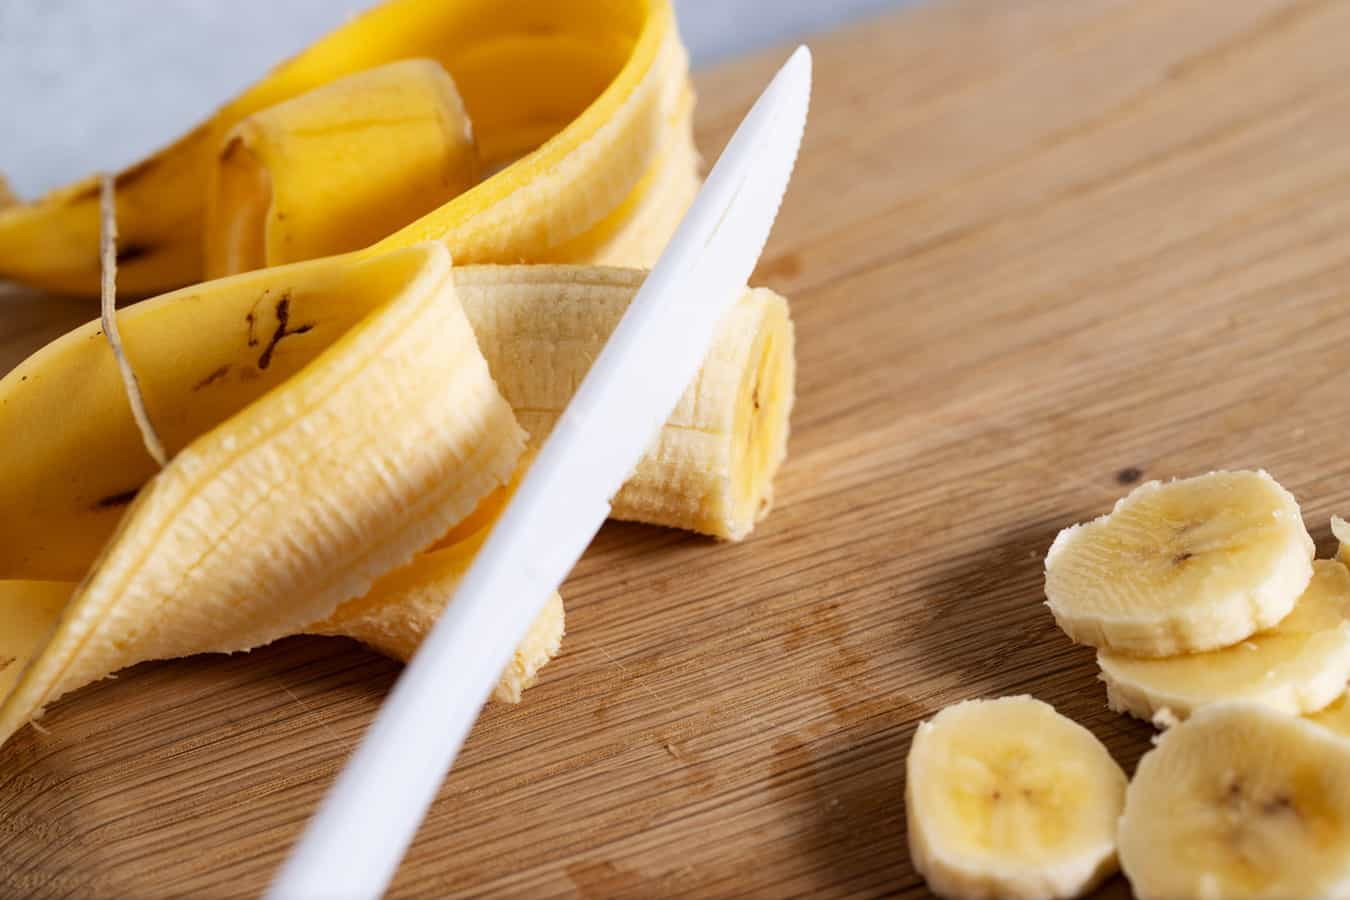 slicing banana with plastic knife